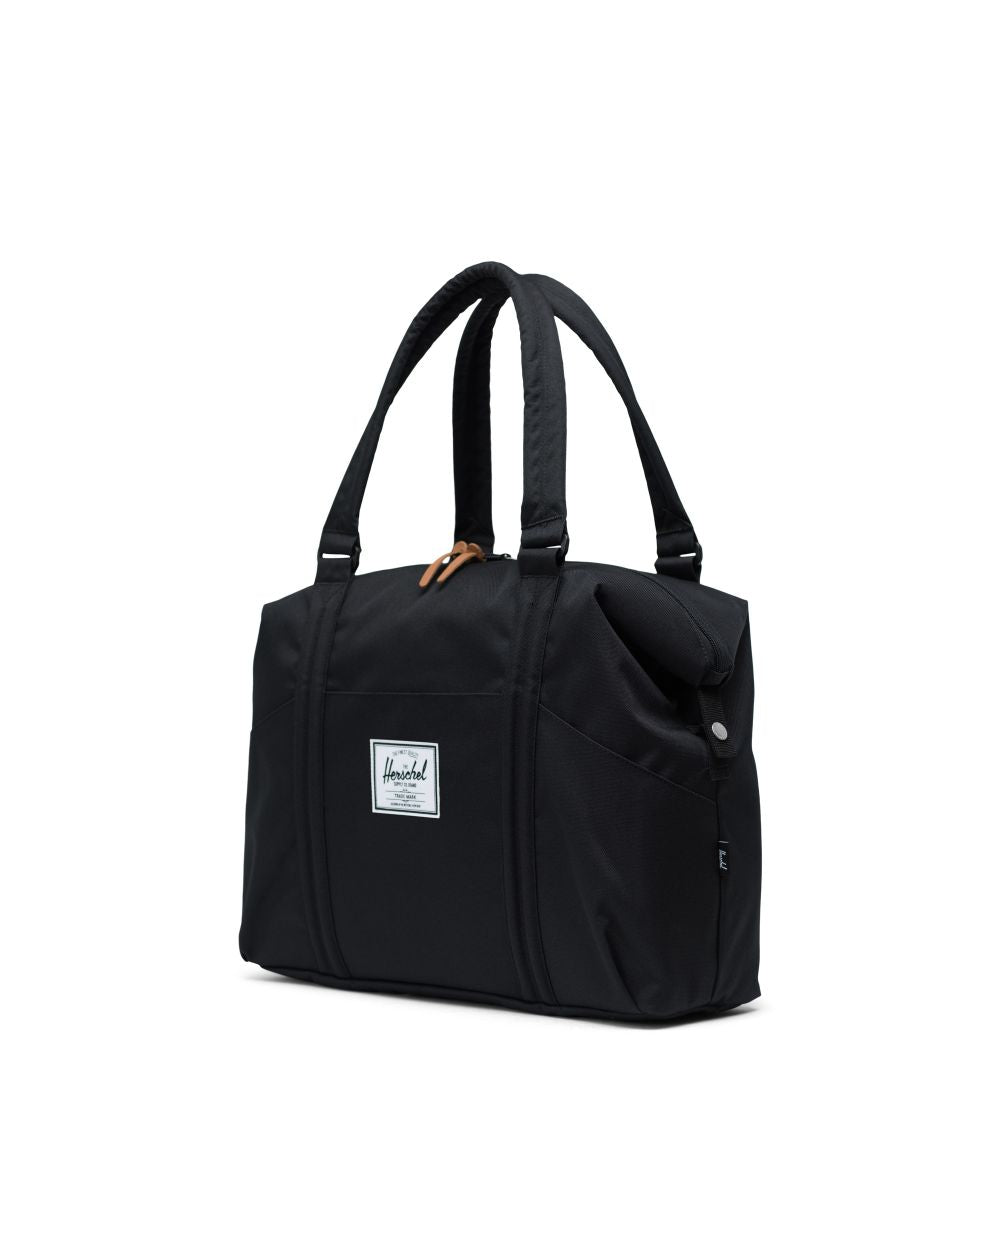 HERSCHEL - STRAND TOTE IN BLACK